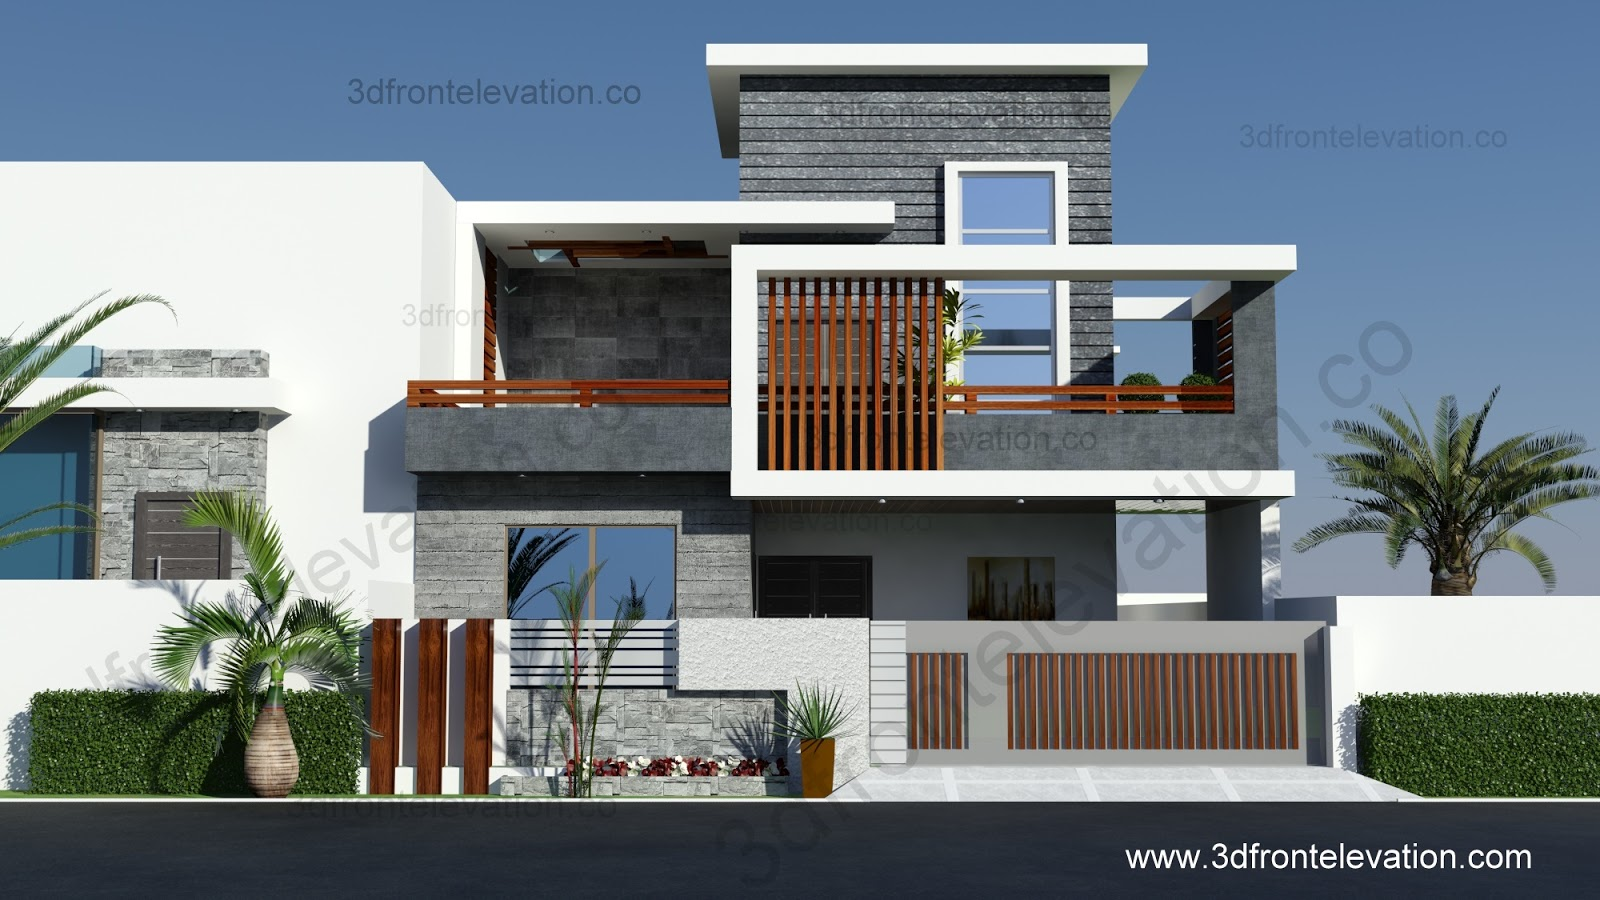 10 marla house plan for Elevation house plans